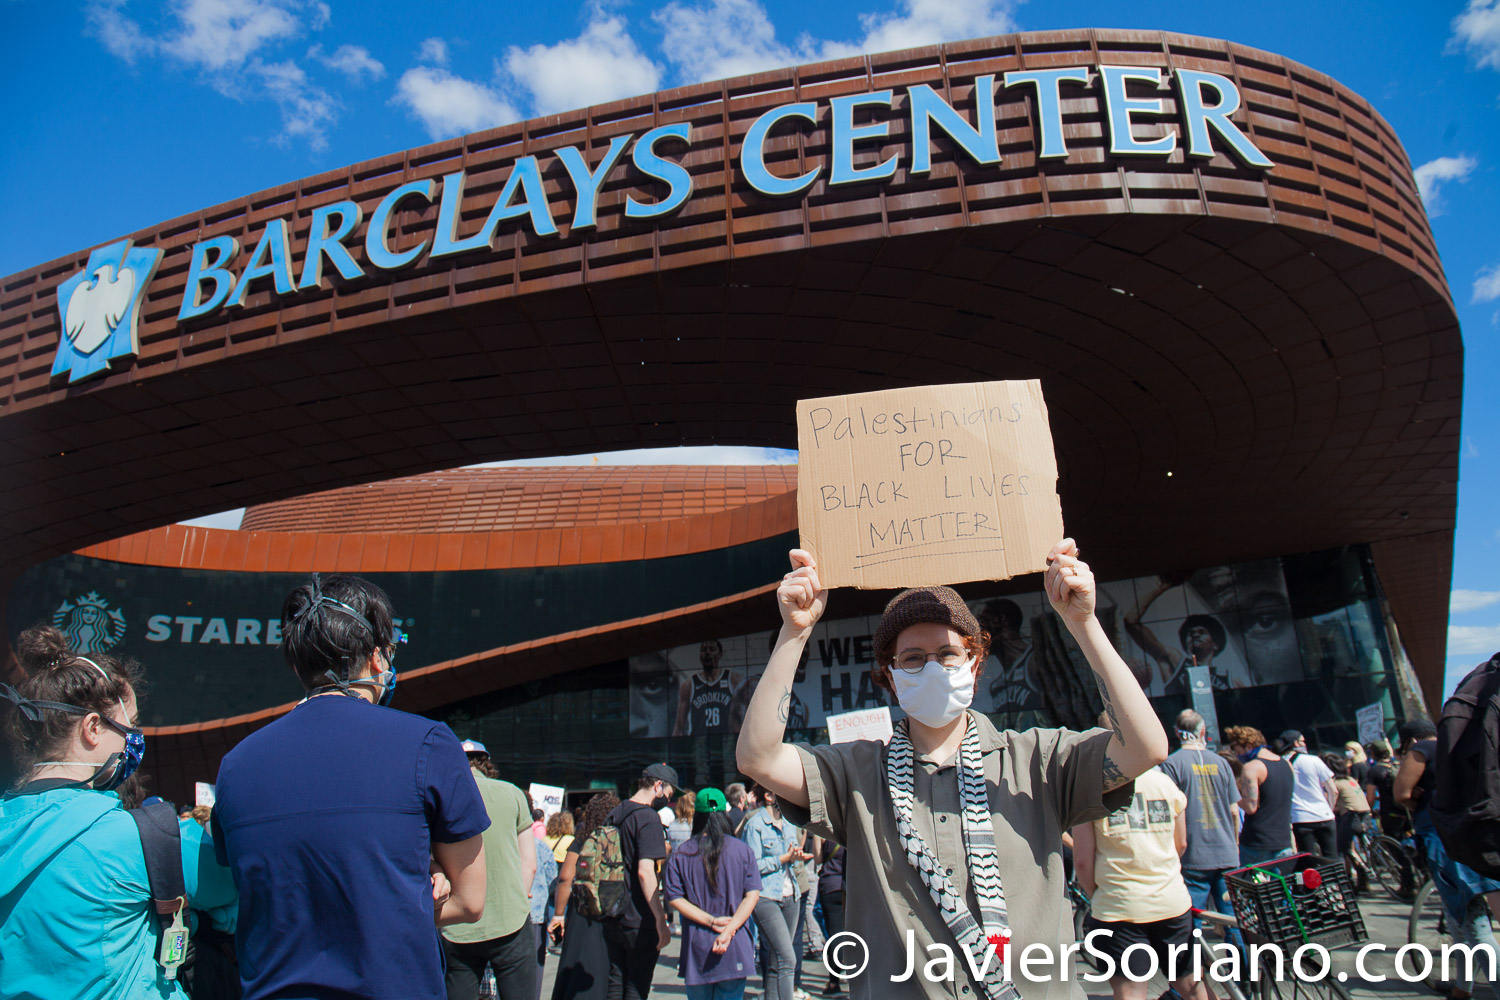 """Sunday, May 31, 2020. New York City -  Rally at Barclays Center, Brooklyn to demand justice for George Floyd, to support Black Lives Matter and to demand police accountability.   The sign says, """"Palestinians for Black Lives Matter"""".  Photo by Javier Soriano/www.JavierSoriano.com"""